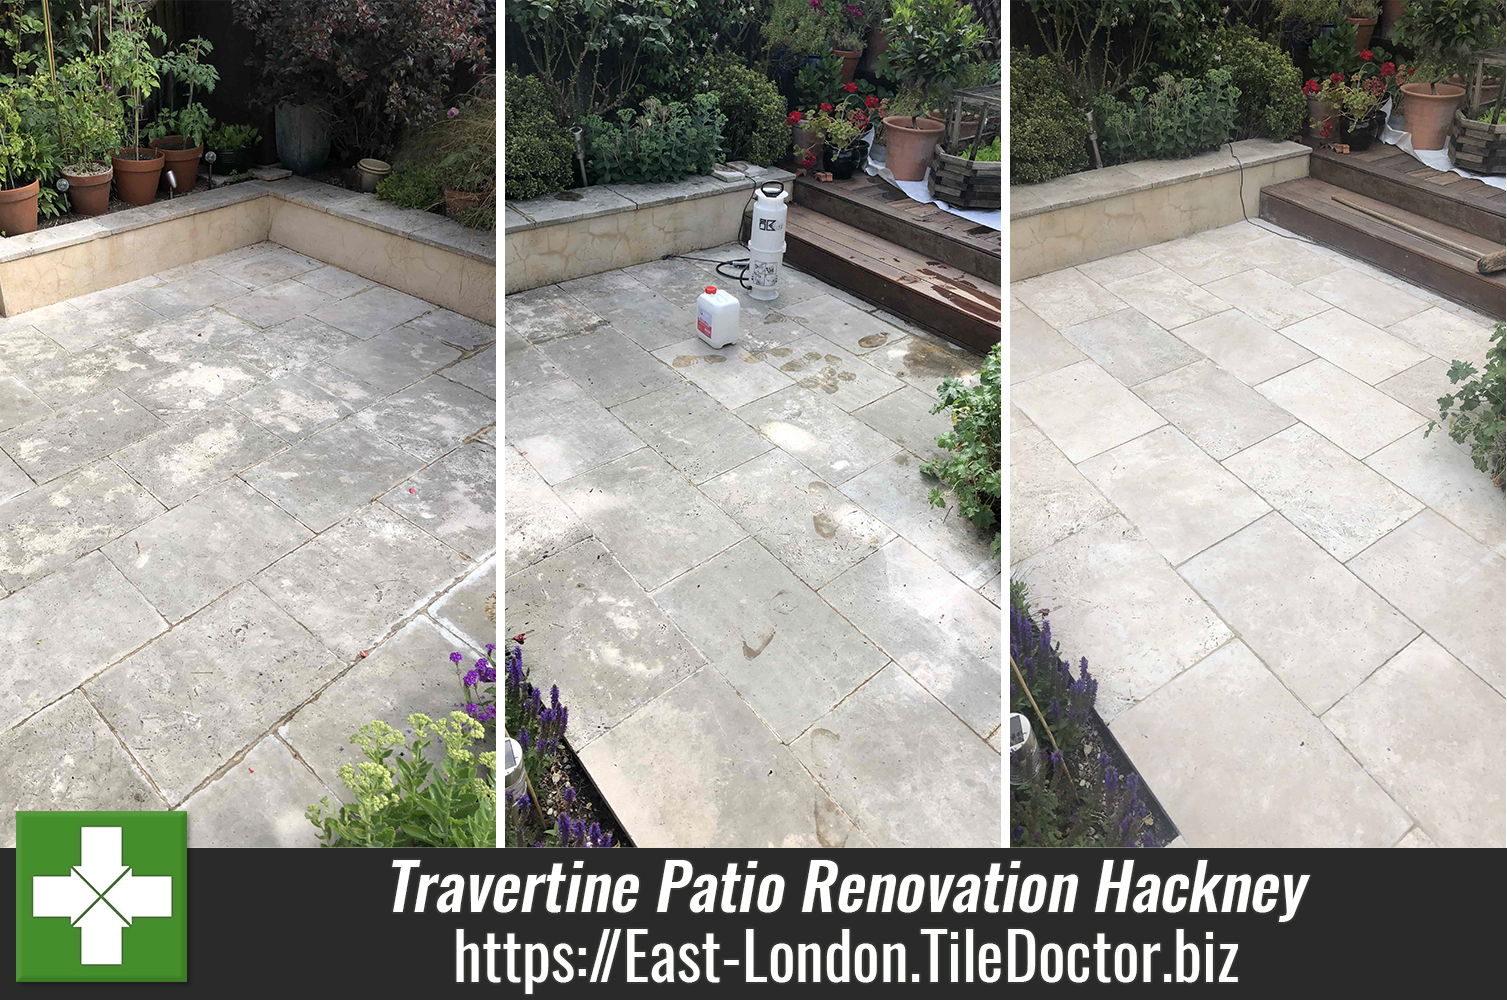 Travertine-Patio-Renovation-Hackney-E5